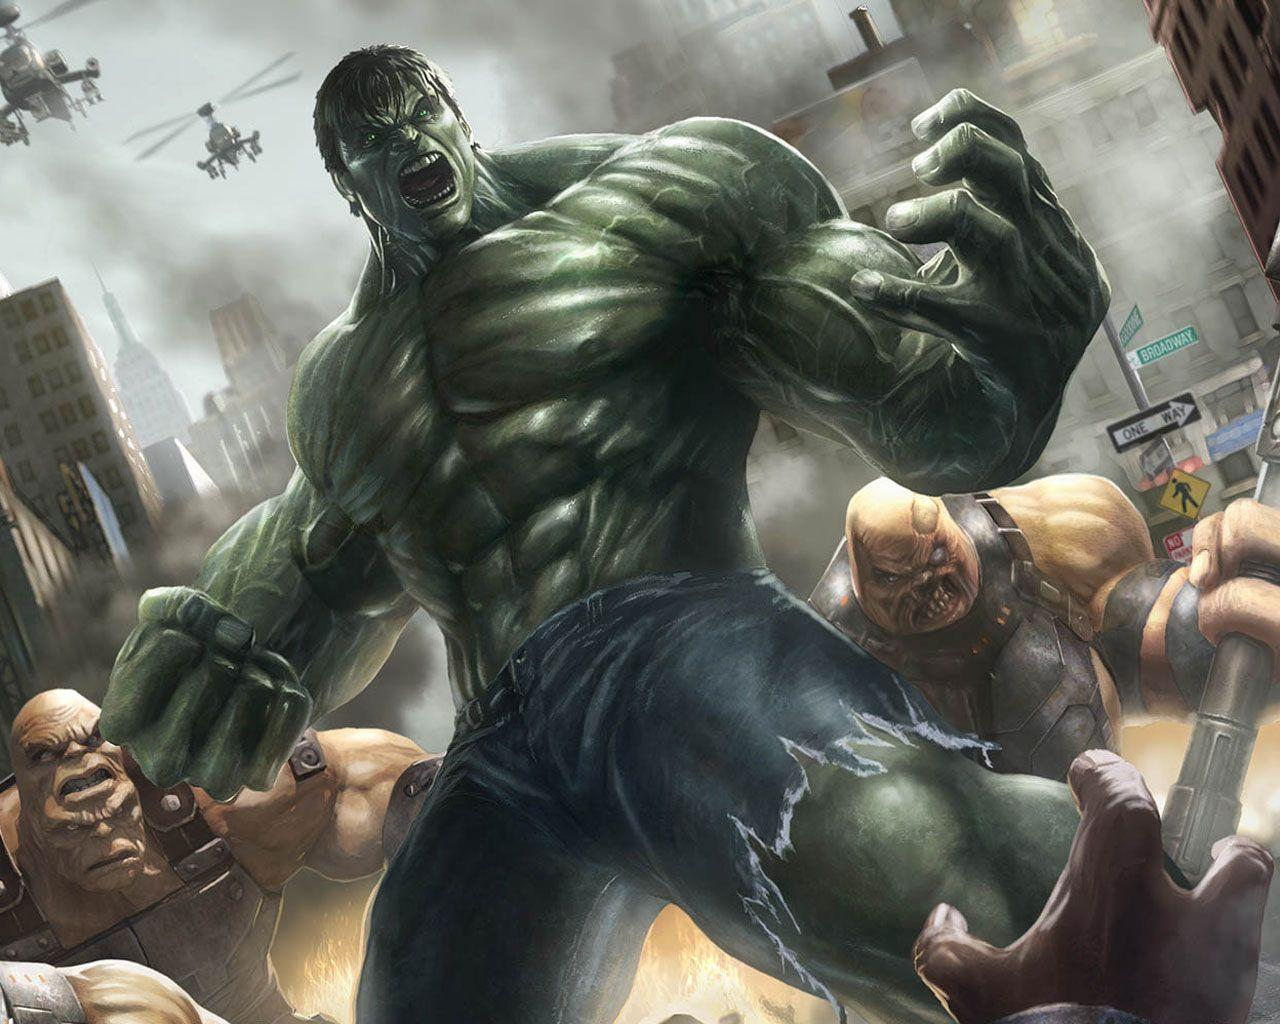 It's just a picture of Magic Incredible Hulk Images